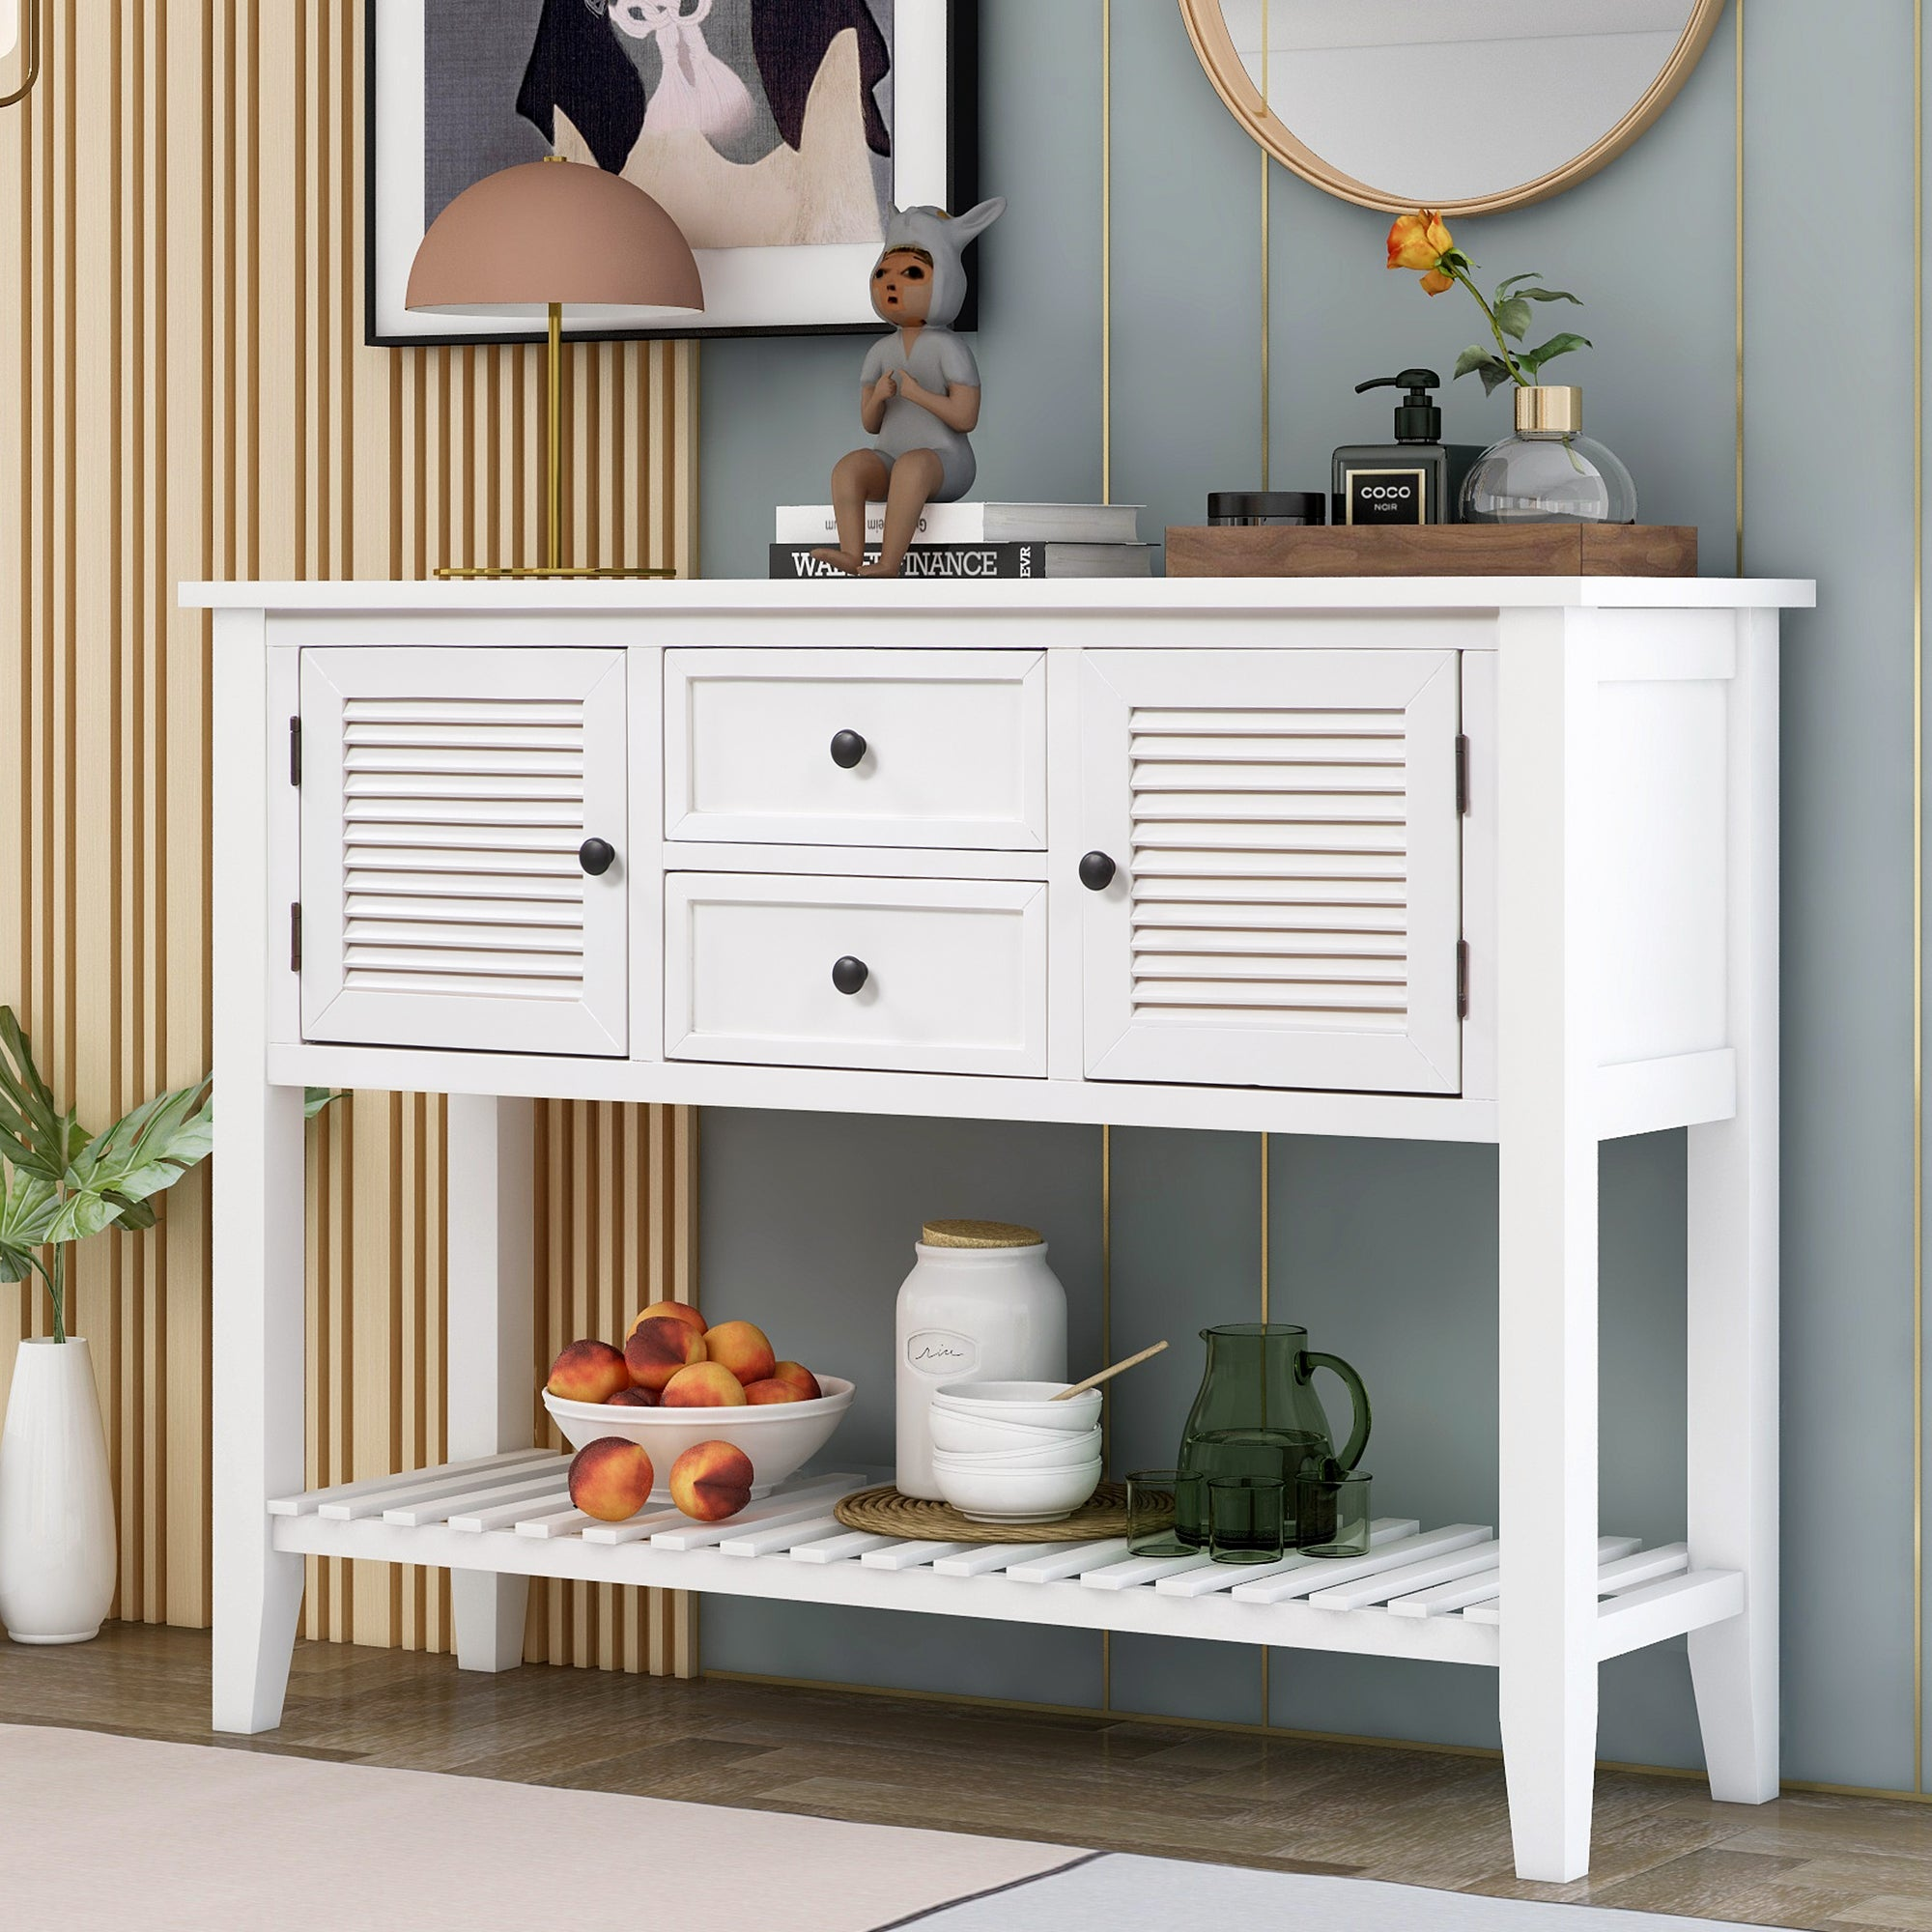 Retro Console Table Sideboard With Shutter Doors